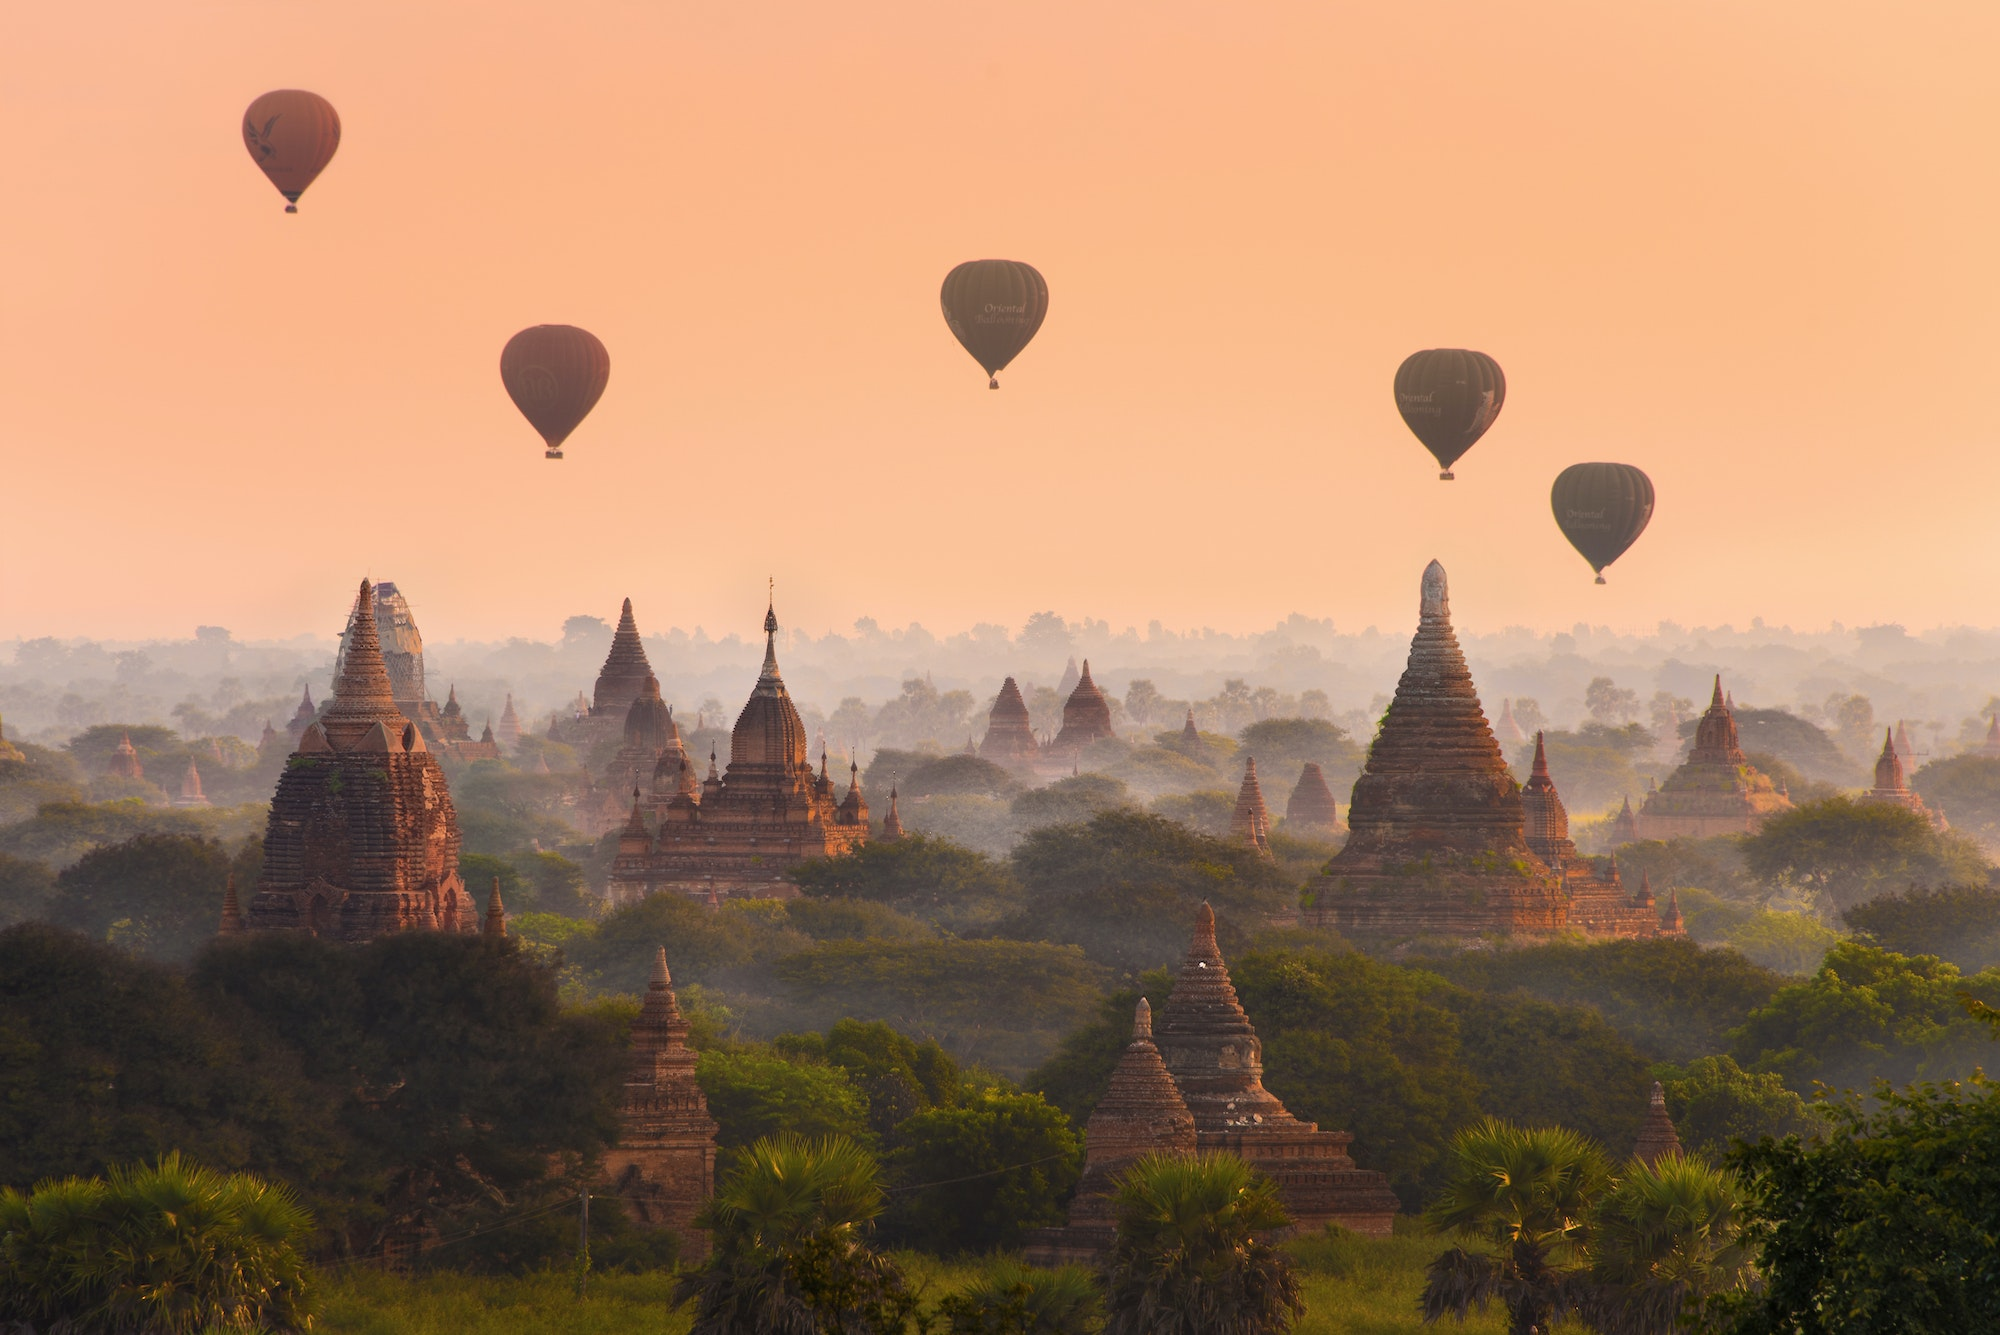 Bagan was the capital of the Kingdom of Pagan (the kingdom that first unified Myanmar) from the 9th to the 13th centuries.